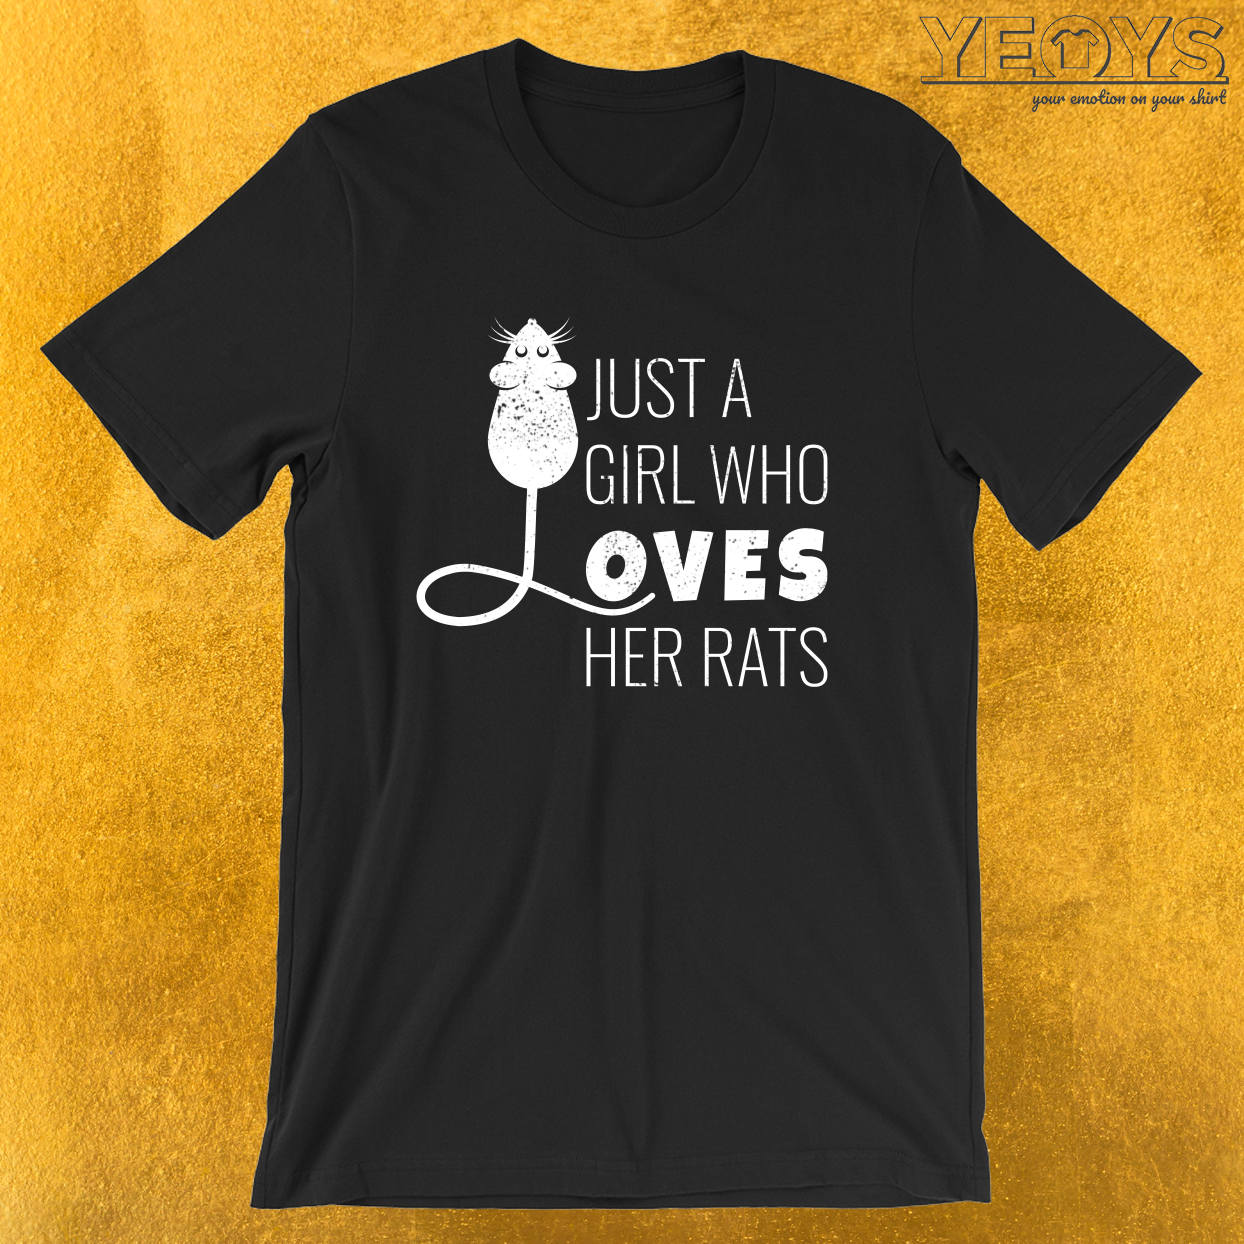 Just A Girl Who Loves Her Rats – Cute Rat Tee